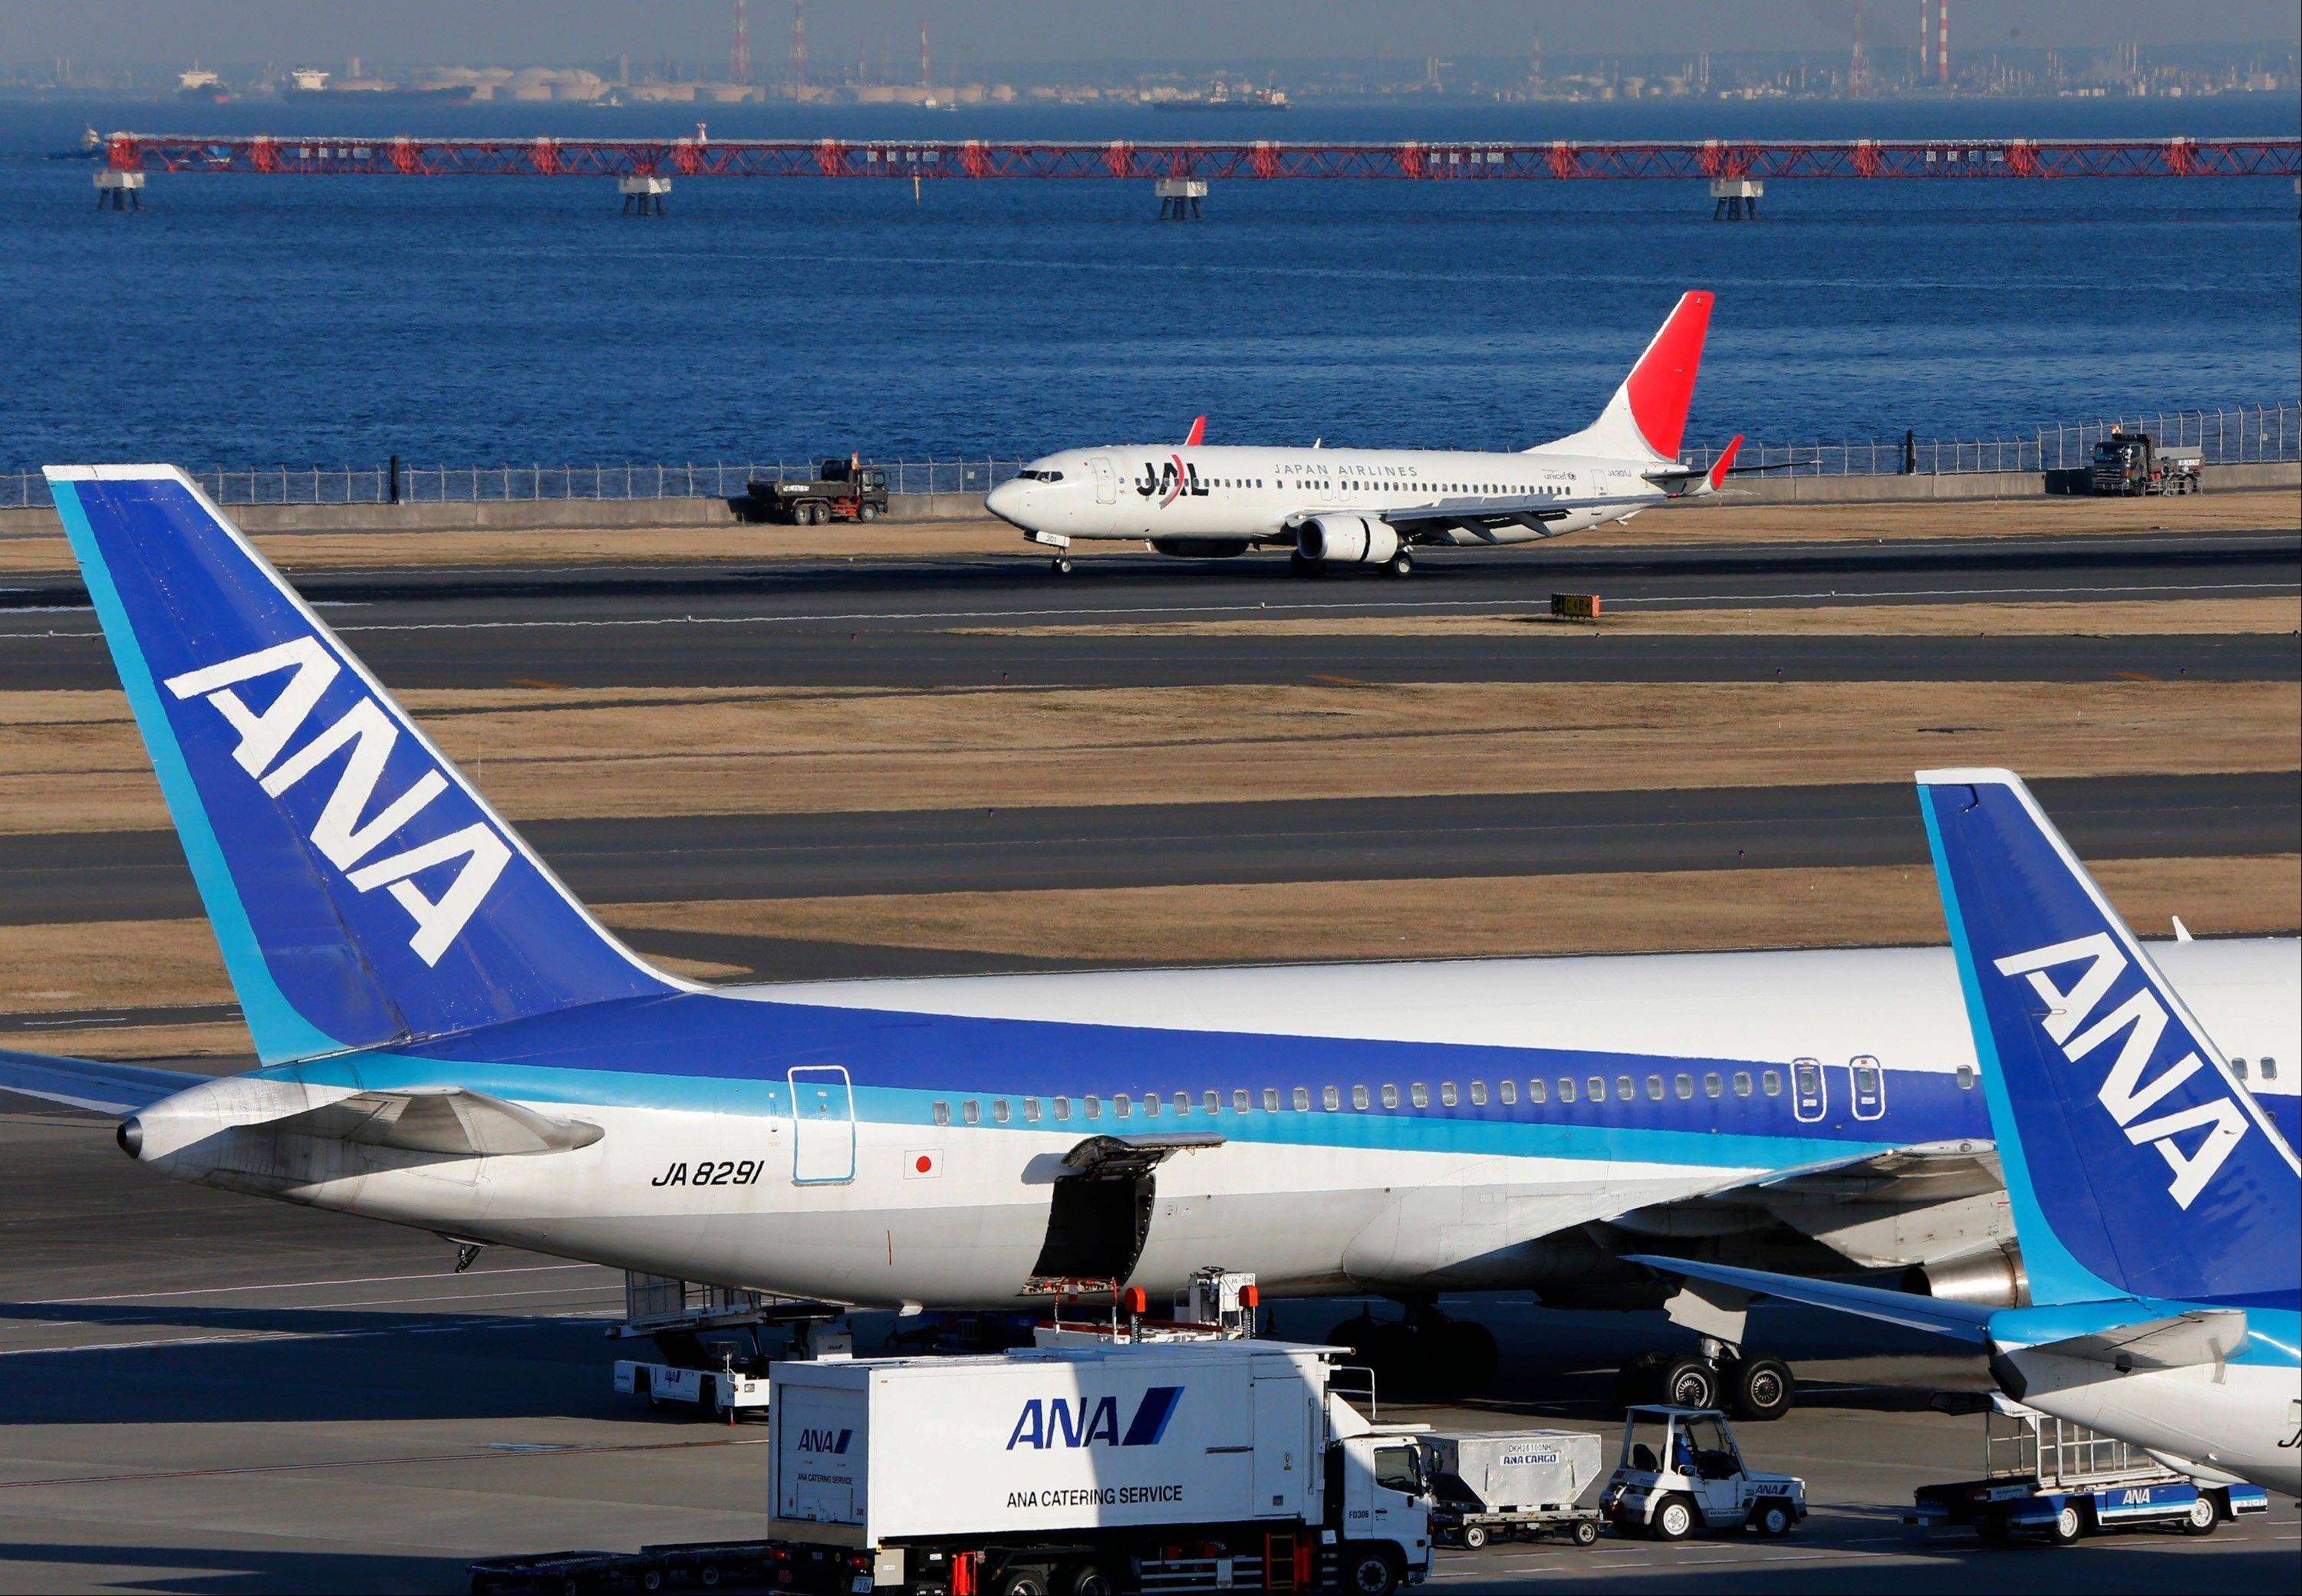 Japan�s All Nippon Airways is prepared to recoup from Boeing whatever damages it suffers from flight cancellations and other costs caused by the worldwide grounding of 787 jets,